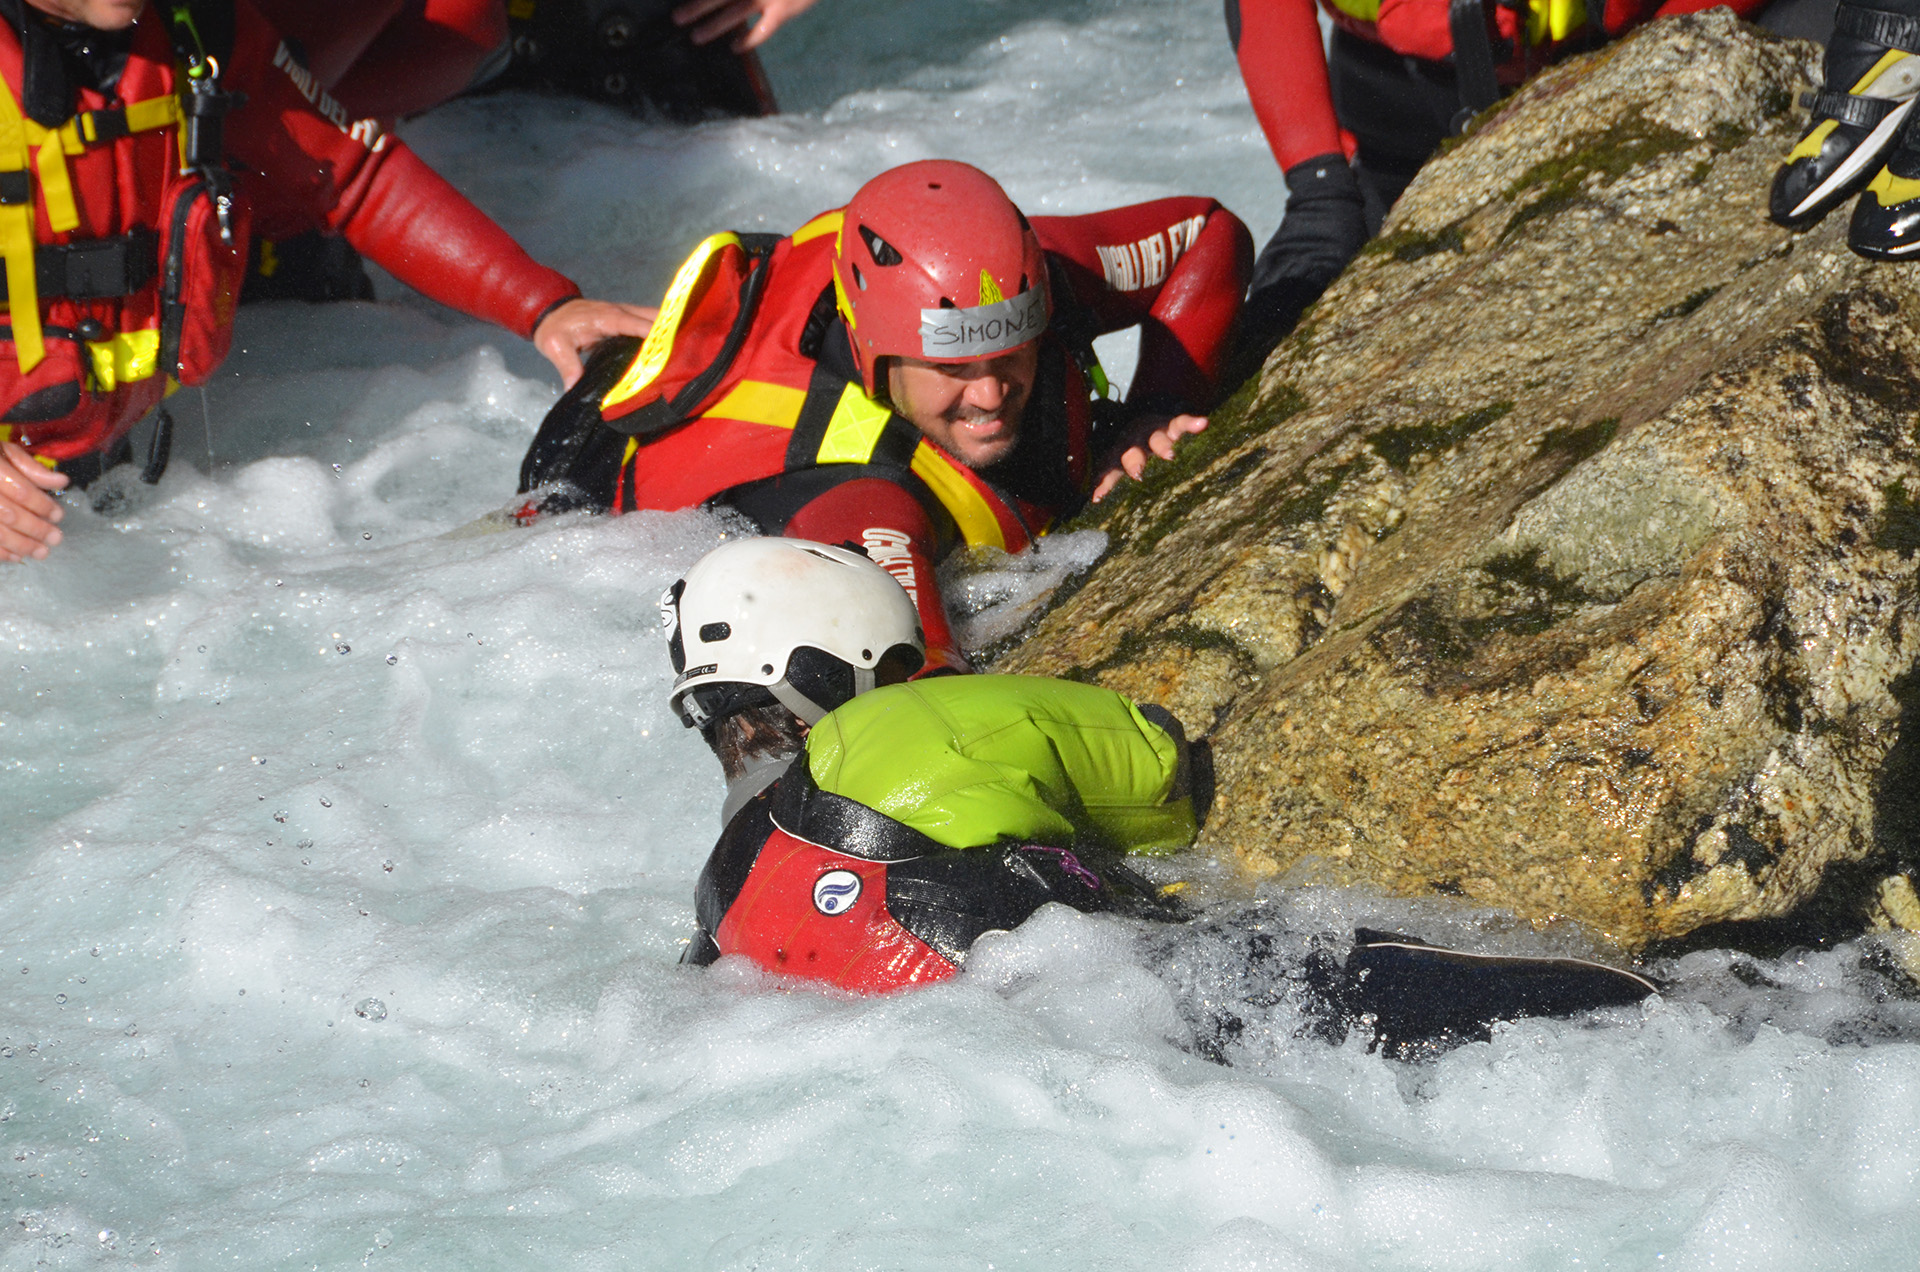 Swiftwater and Flood Rescue Technician (SRT)